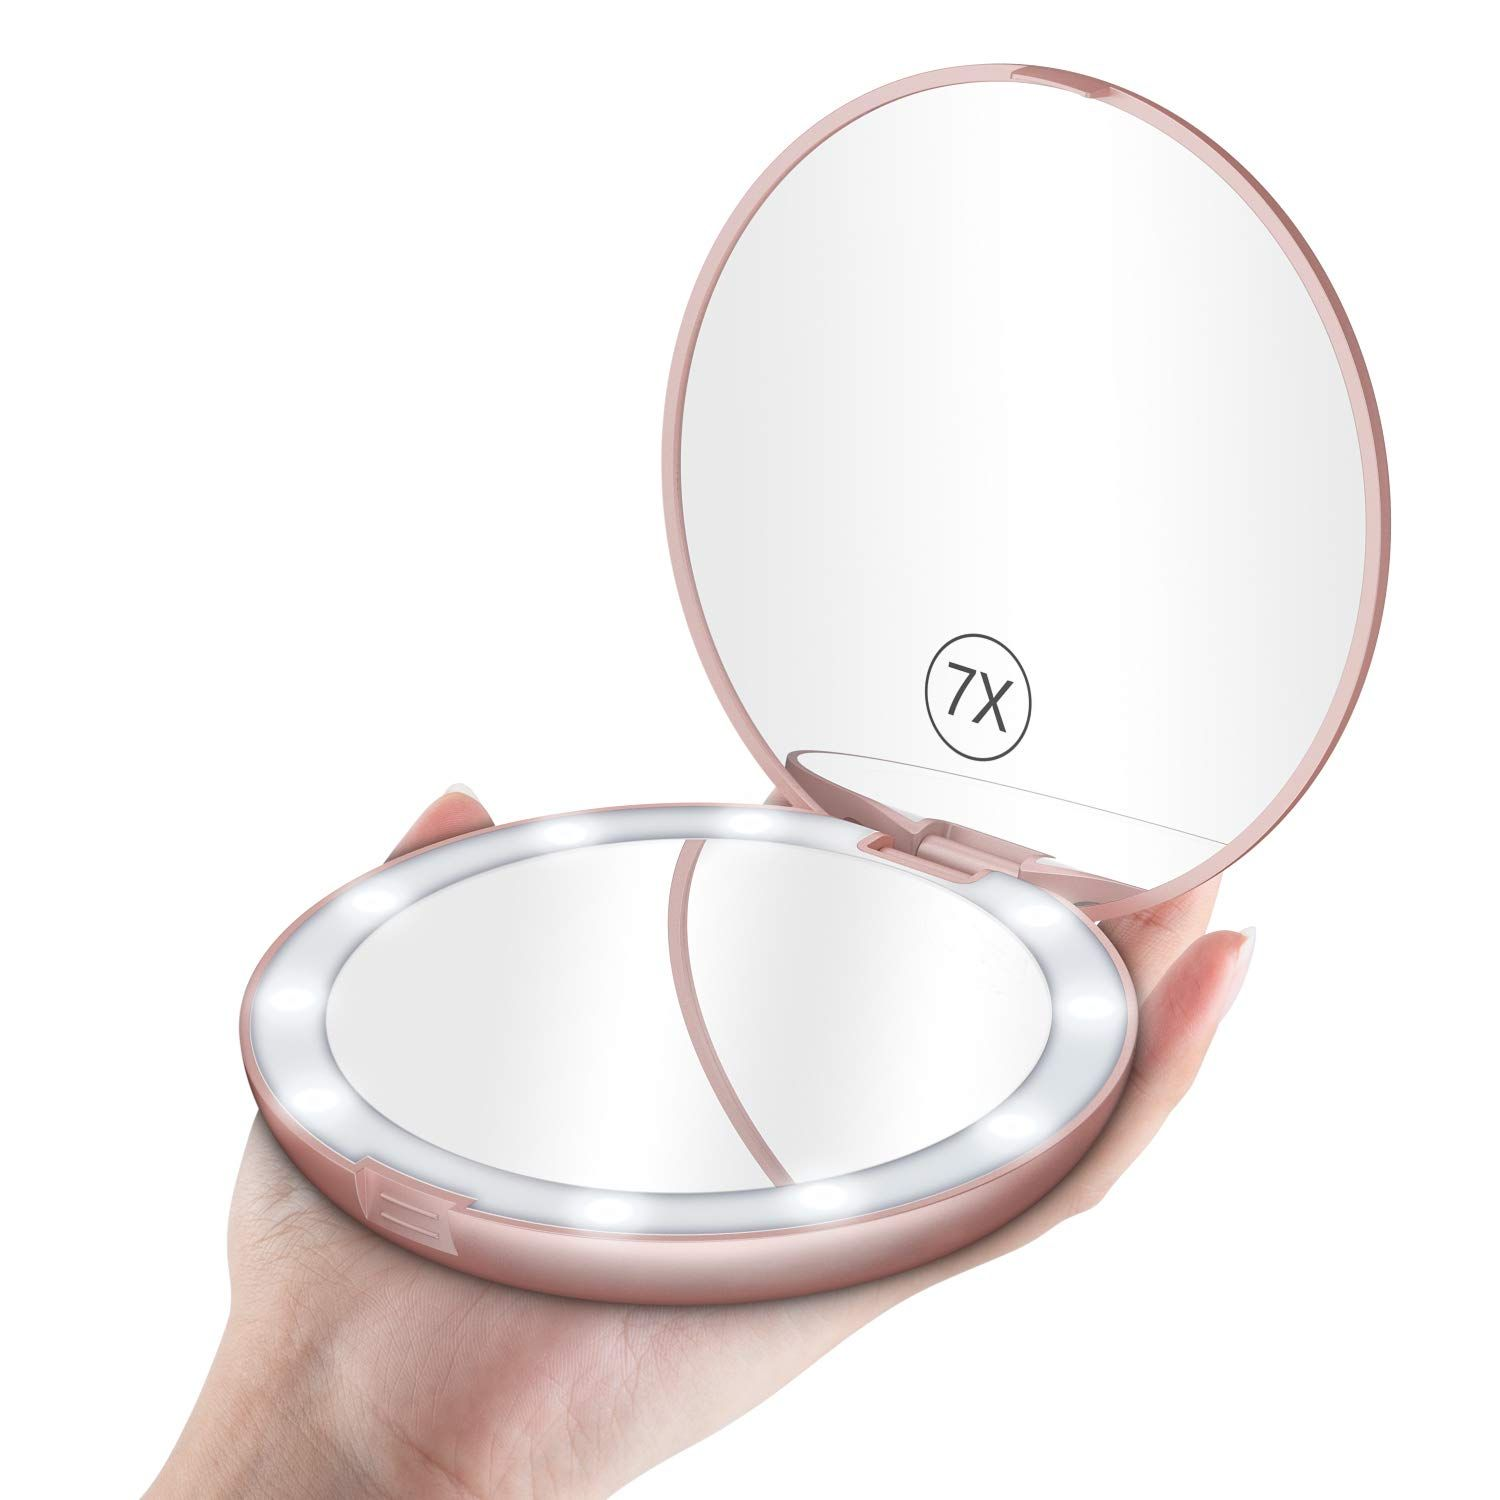 Benbilry Led Lighted Travel Makeup Mirror 1x 7x Magnification 5